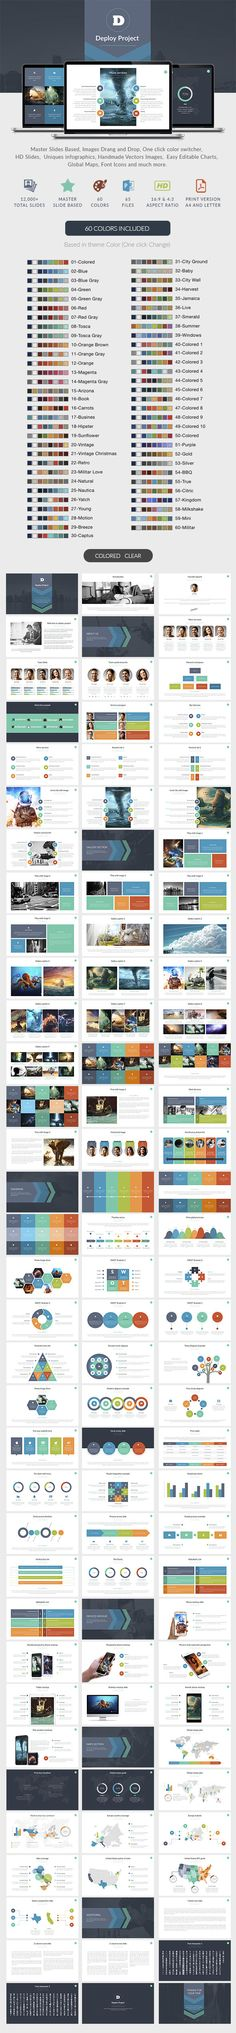 Deploy | Powerpoint Template #slides #design Download: http://graphicriver.net/item/deploy-powerpoint-template/11797056?ref=ksioks